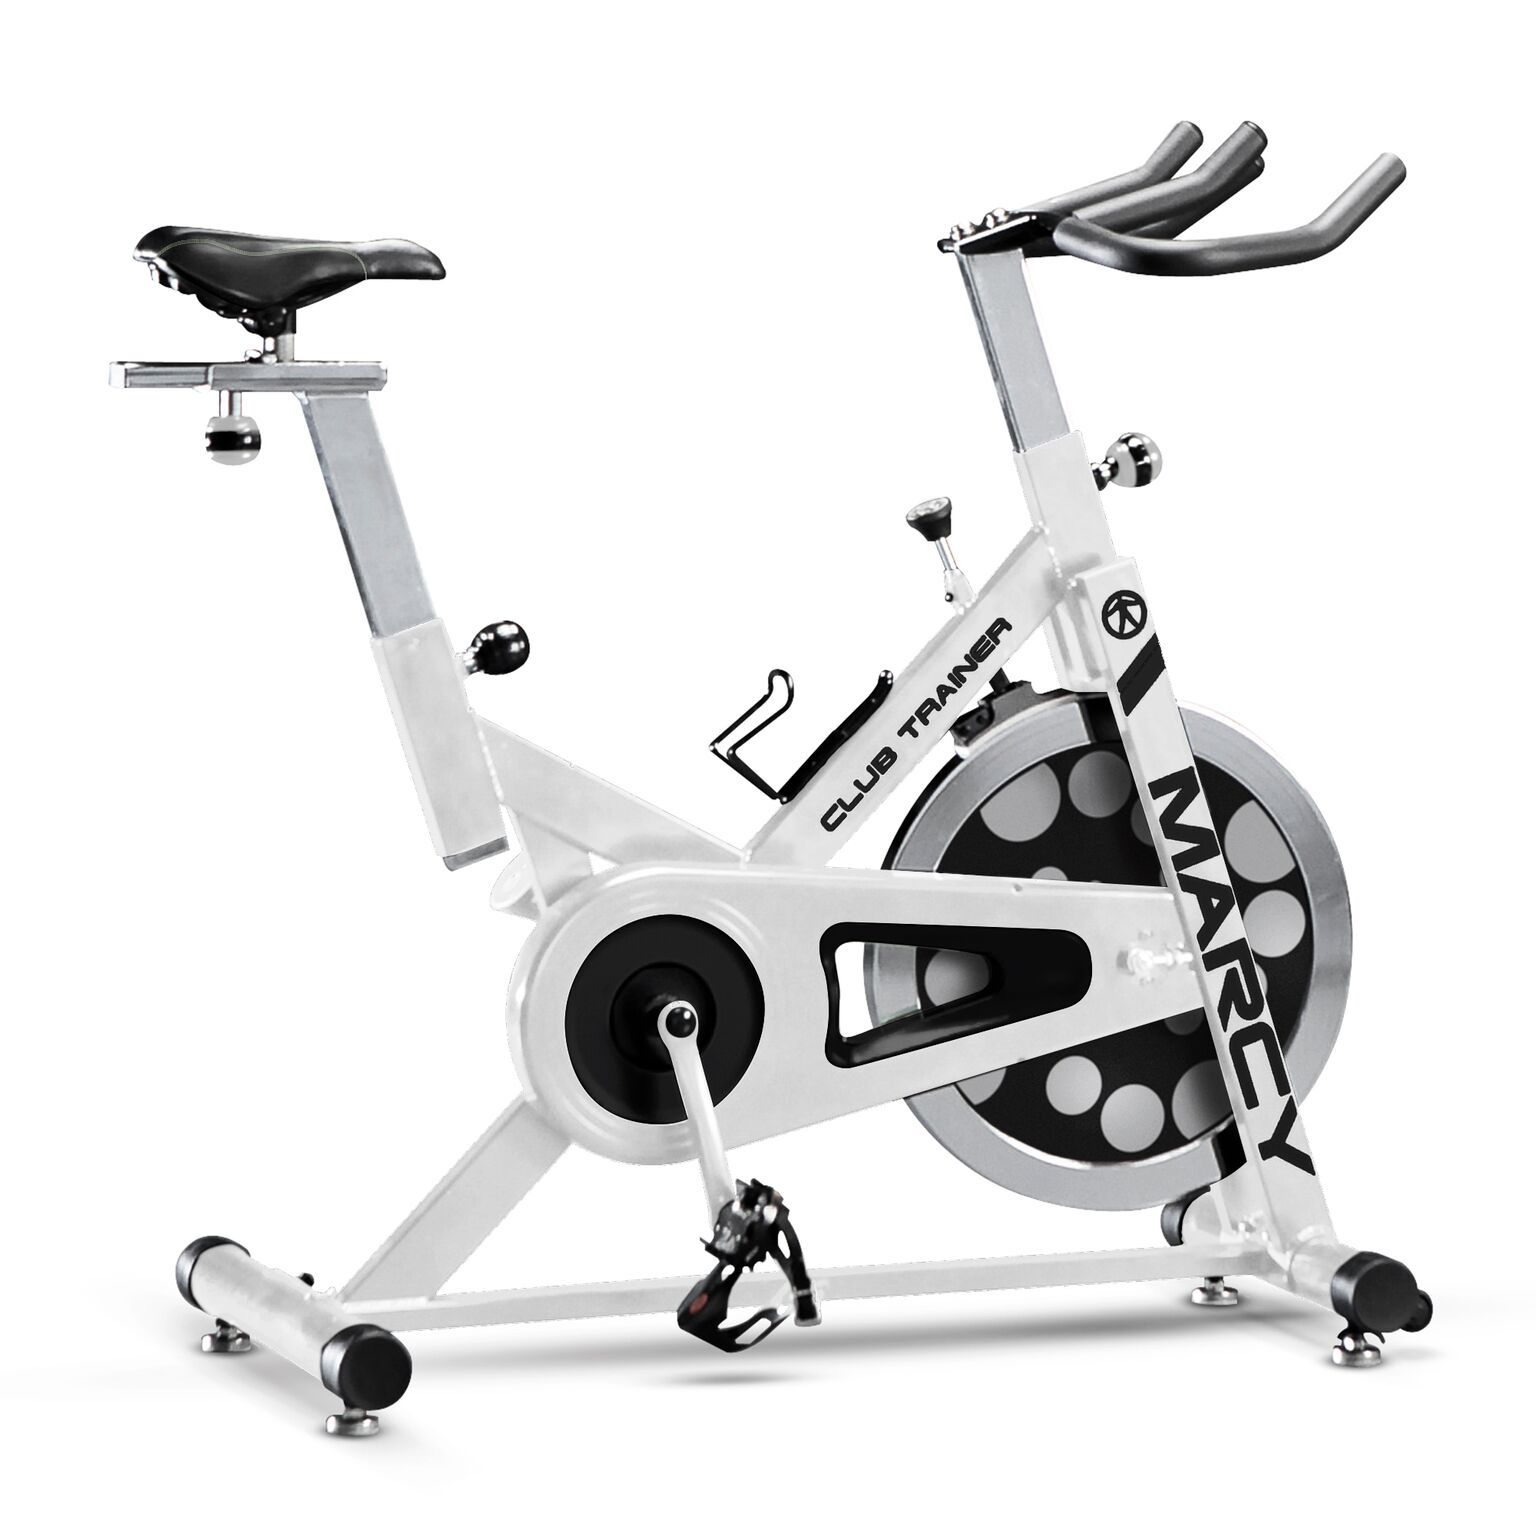 Marcy Xj 5801 Club Revolution Indoor Home Gym Exercise Bike